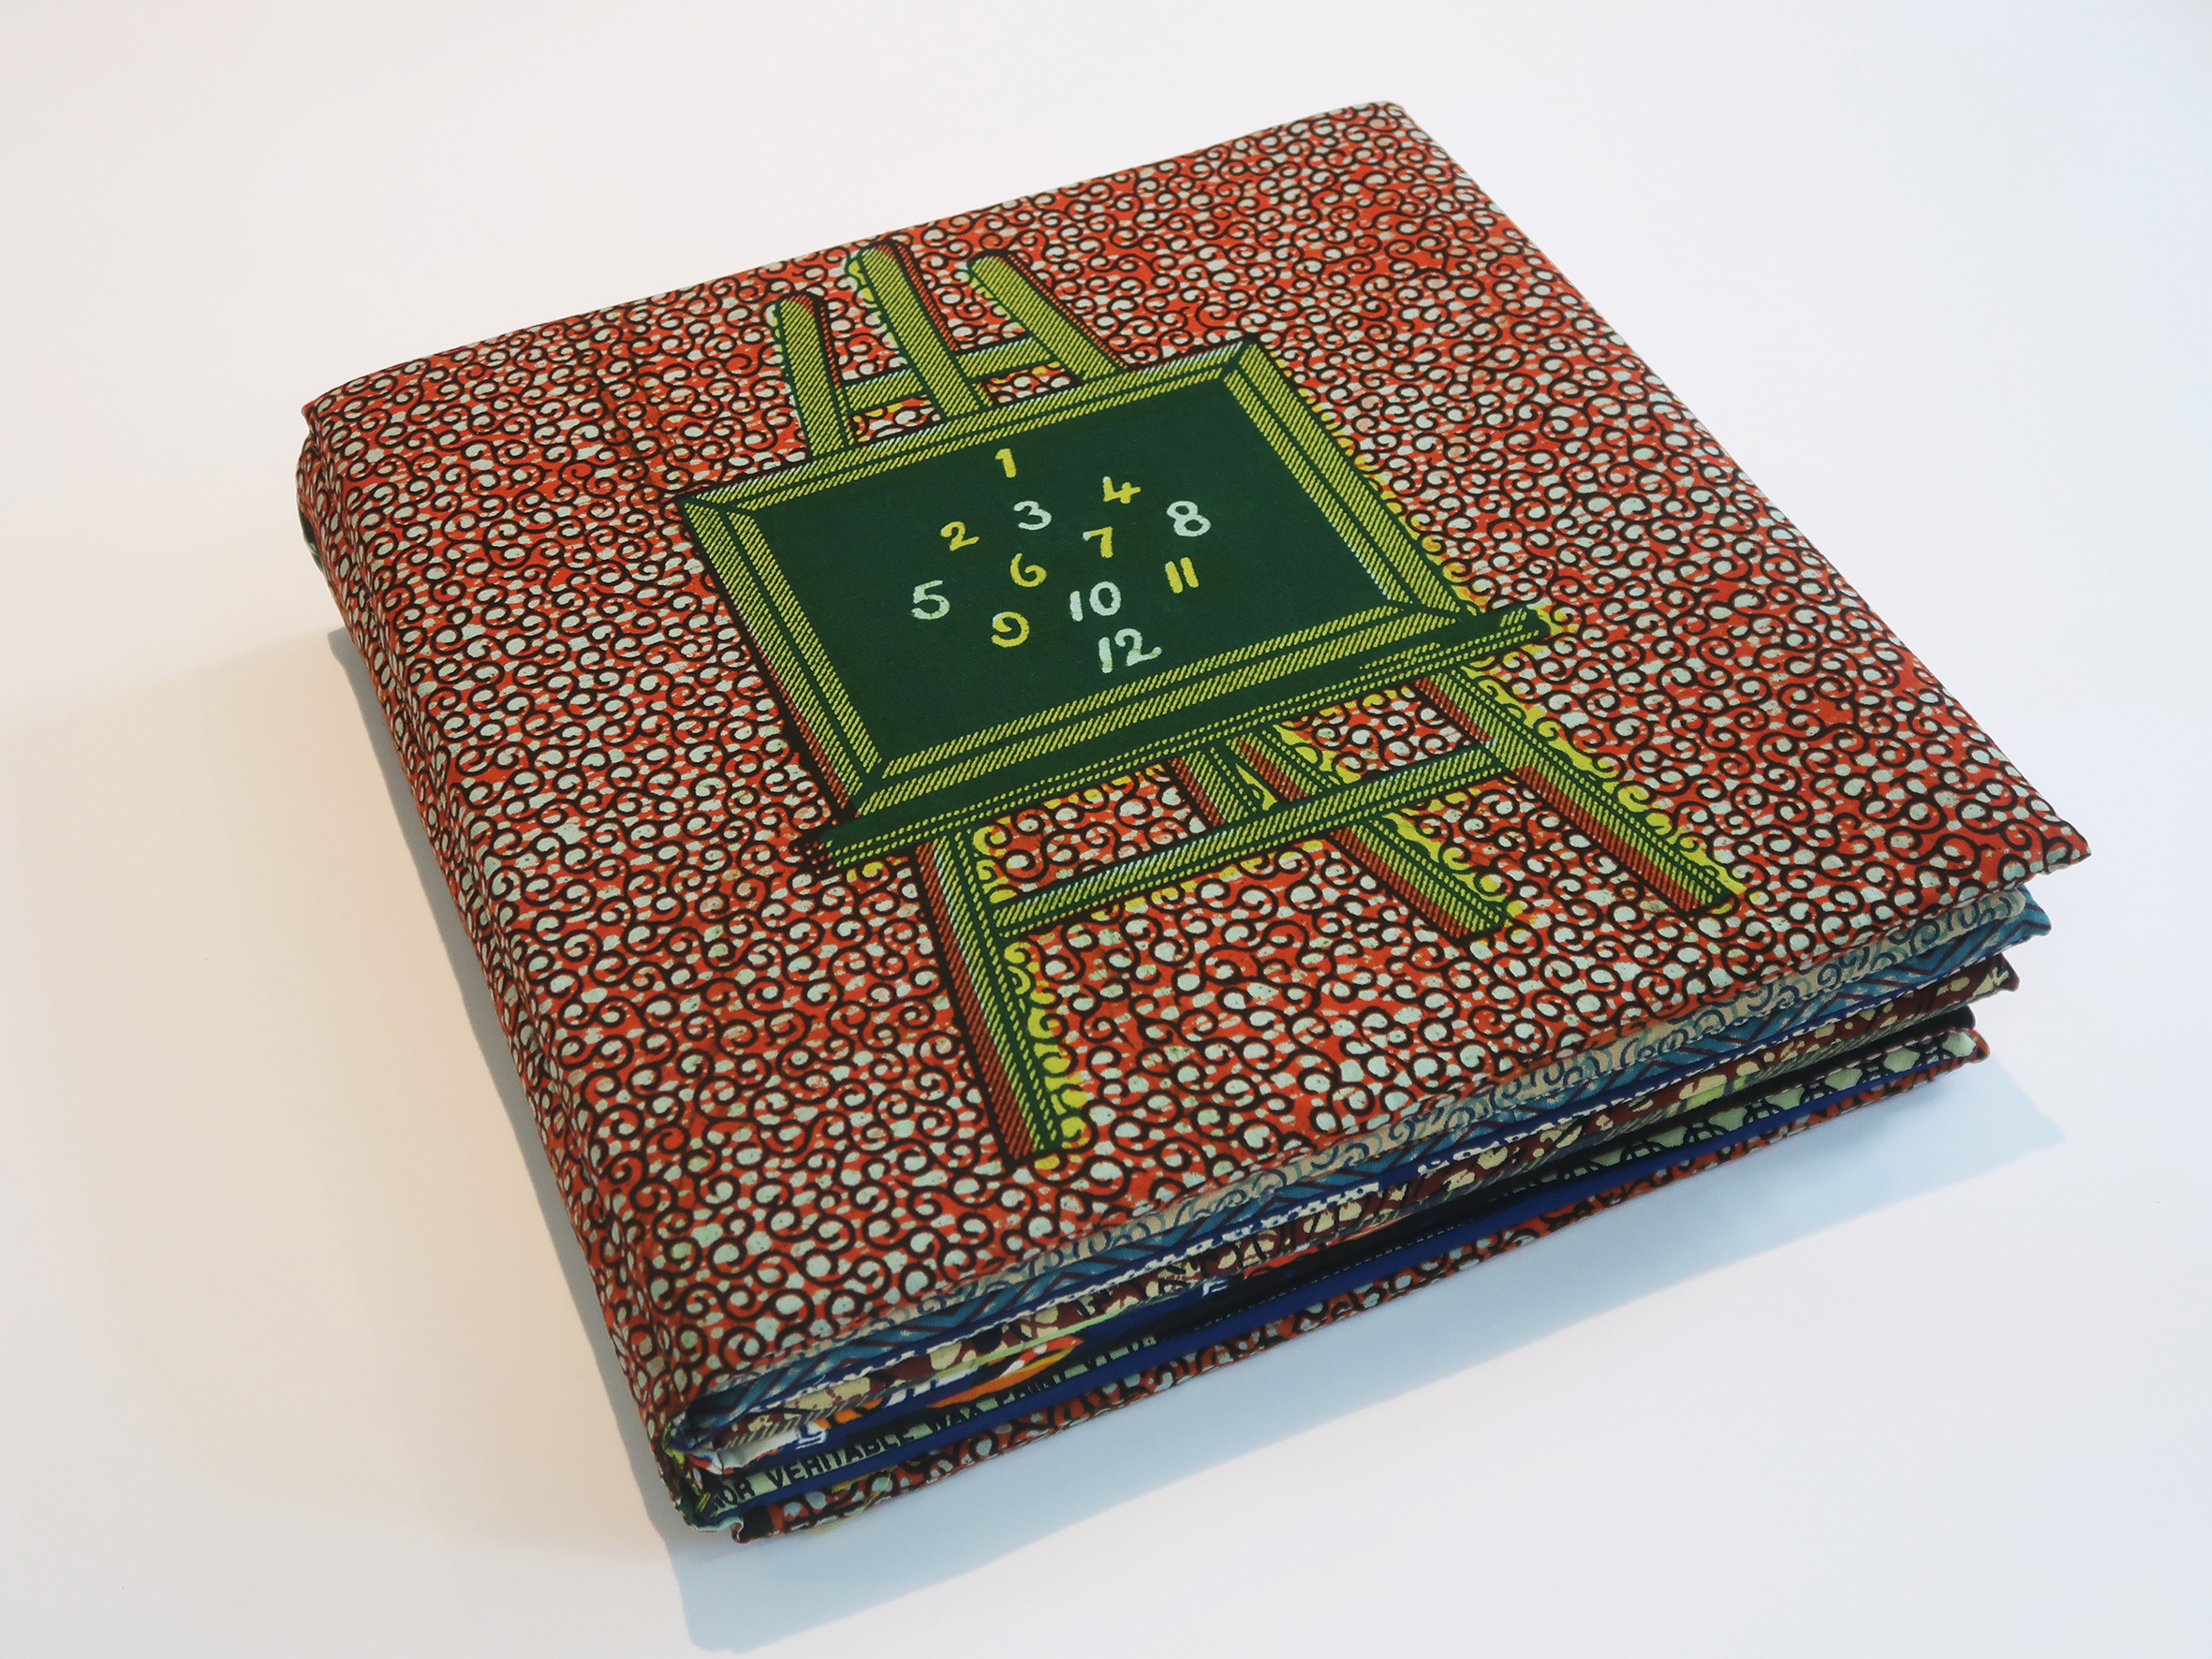 Fabric book with an easel applique on the cover